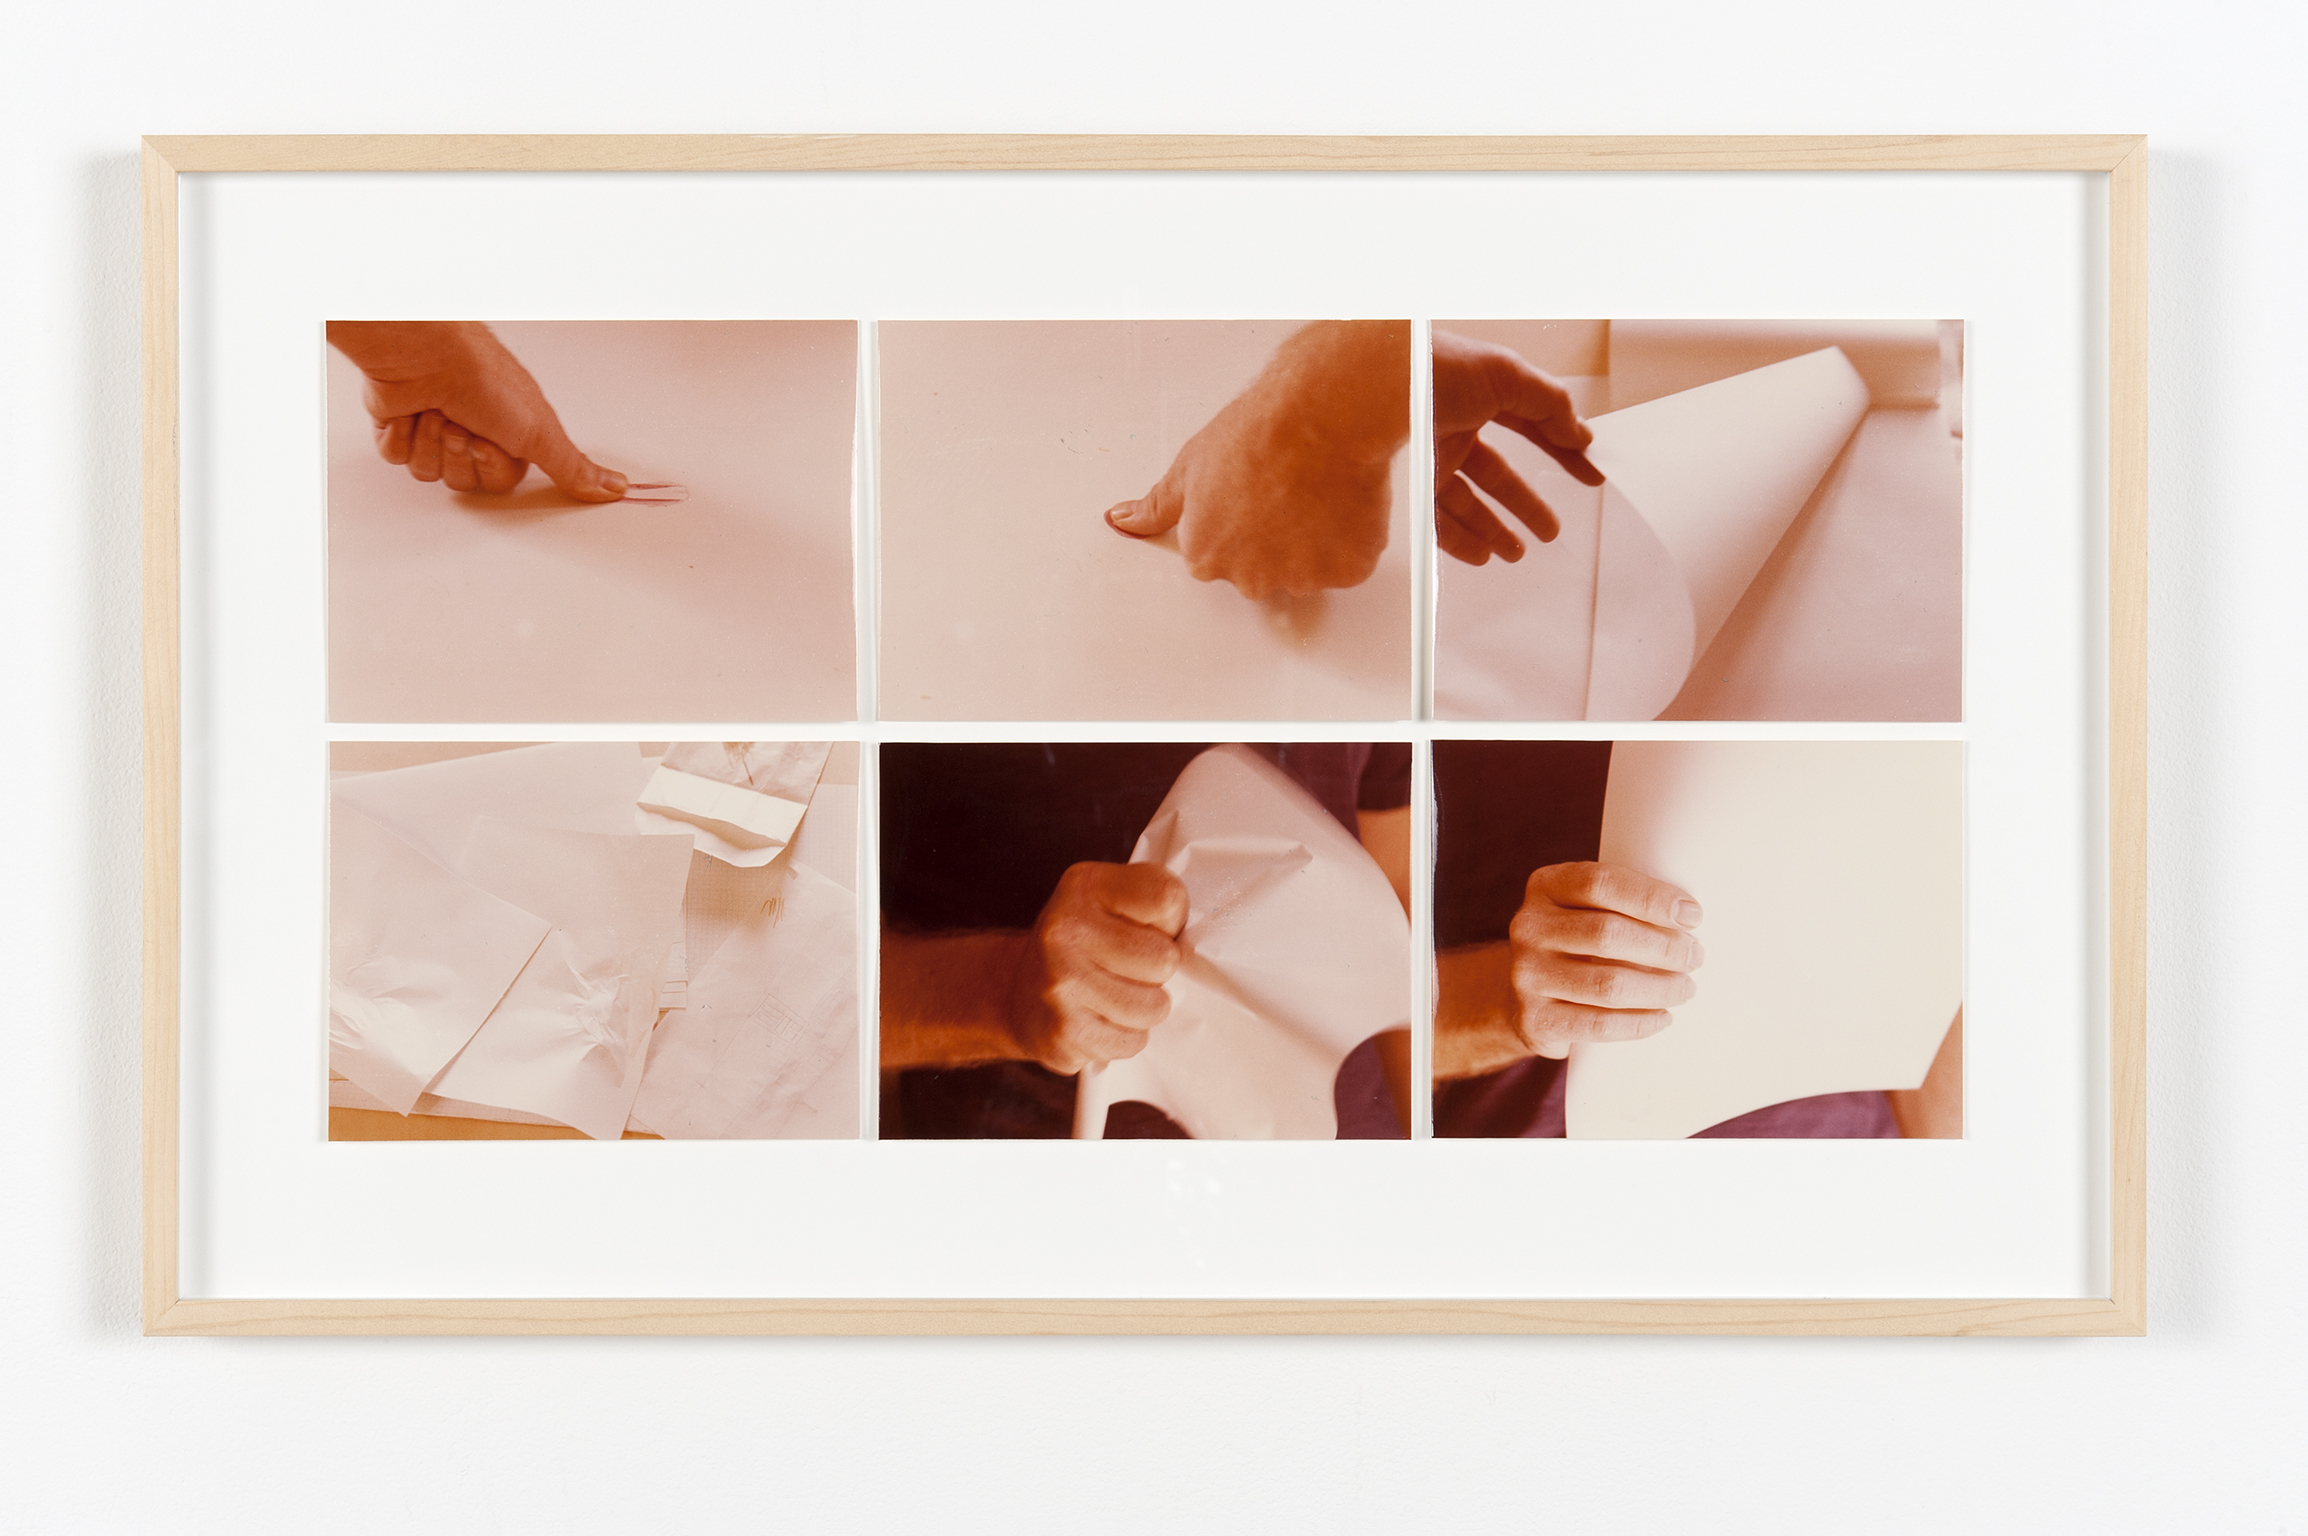 ​Robert Kleyn, Untitled, 1976–1977, colour photographs, 14 x 23 in. (36 x 58 cm) by